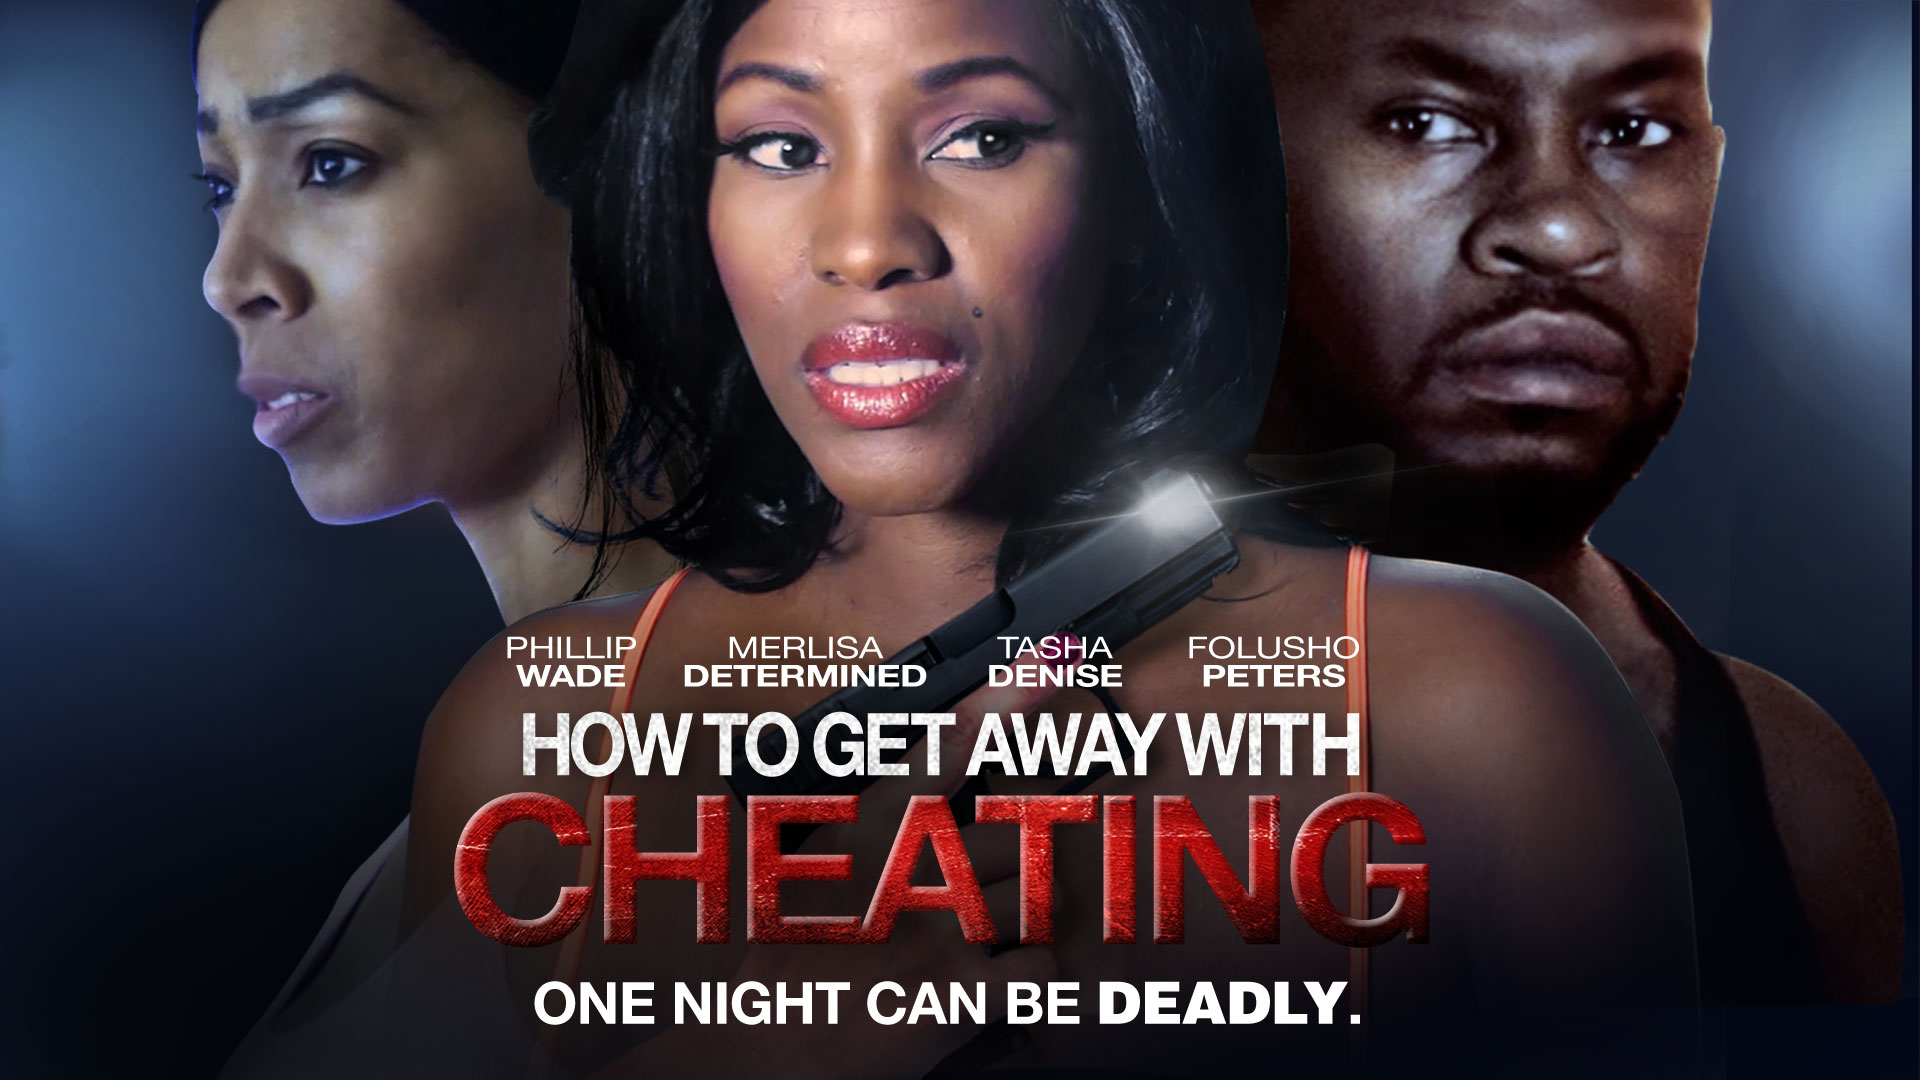 How To Get Away With Cheating